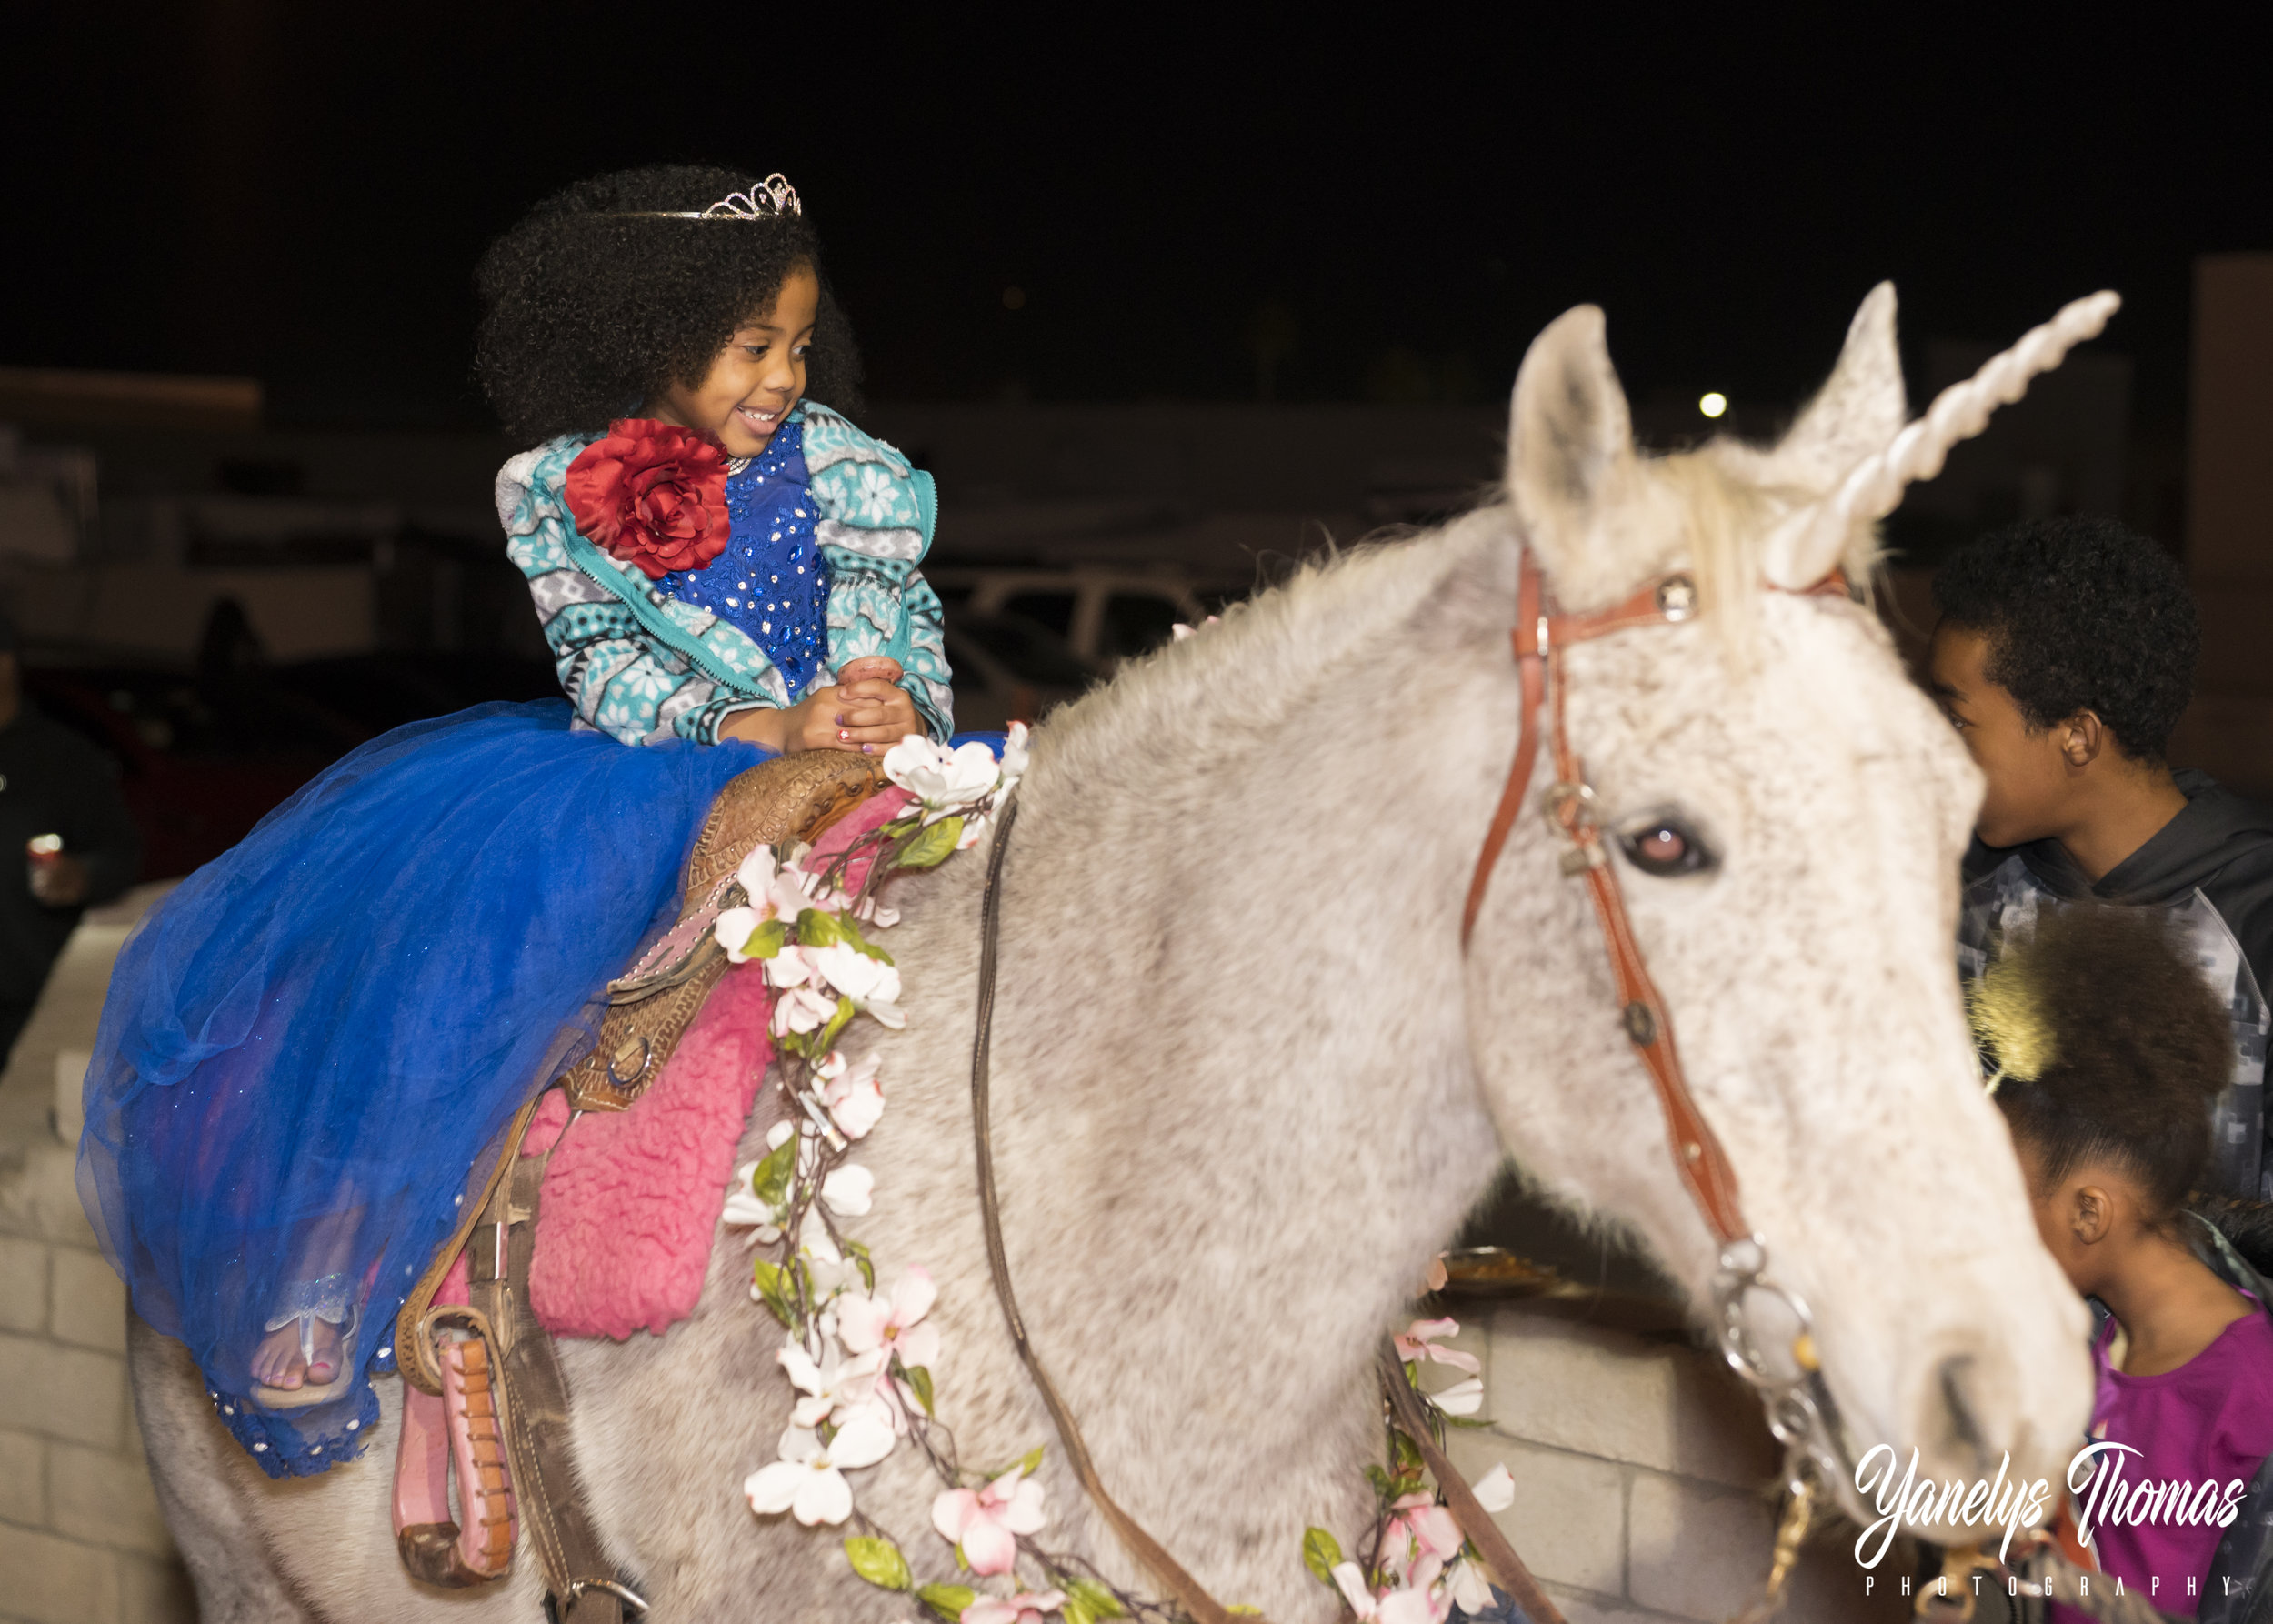 The big smile on her face tells how happy and special she felt.  She rode her Unicorn through all her loved ones and proceded inside for a special Castle Themed photoshoot with Yanelys Photography, here is some of the beautiful images captured.